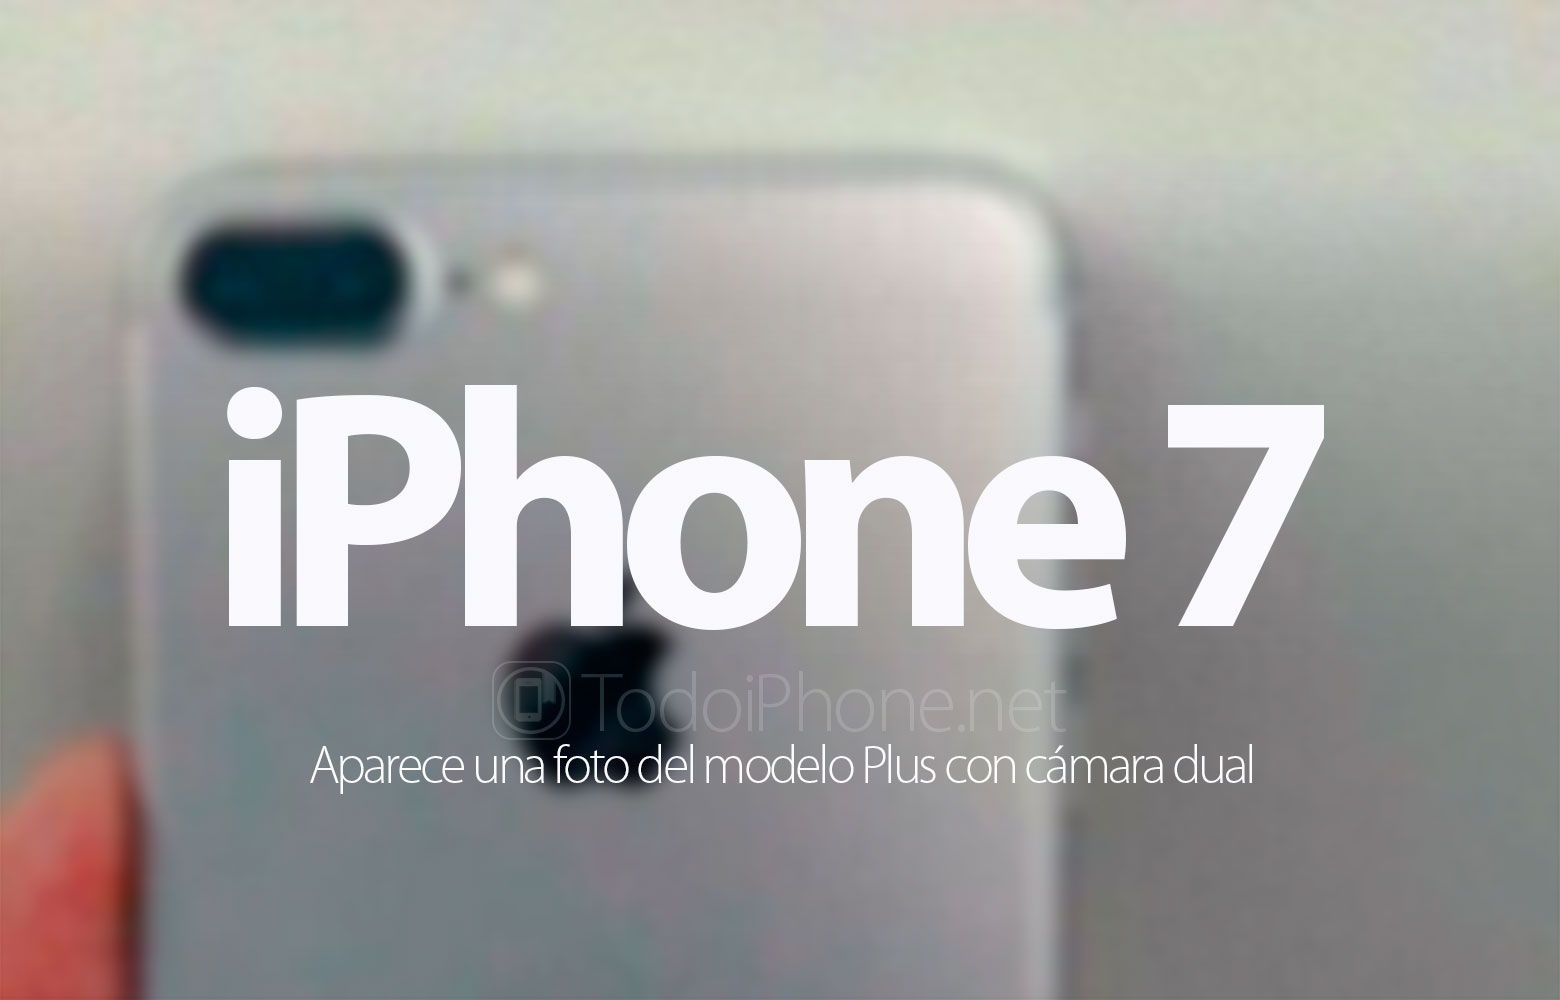 iphone-7-plus-posible-foto-camara-dual